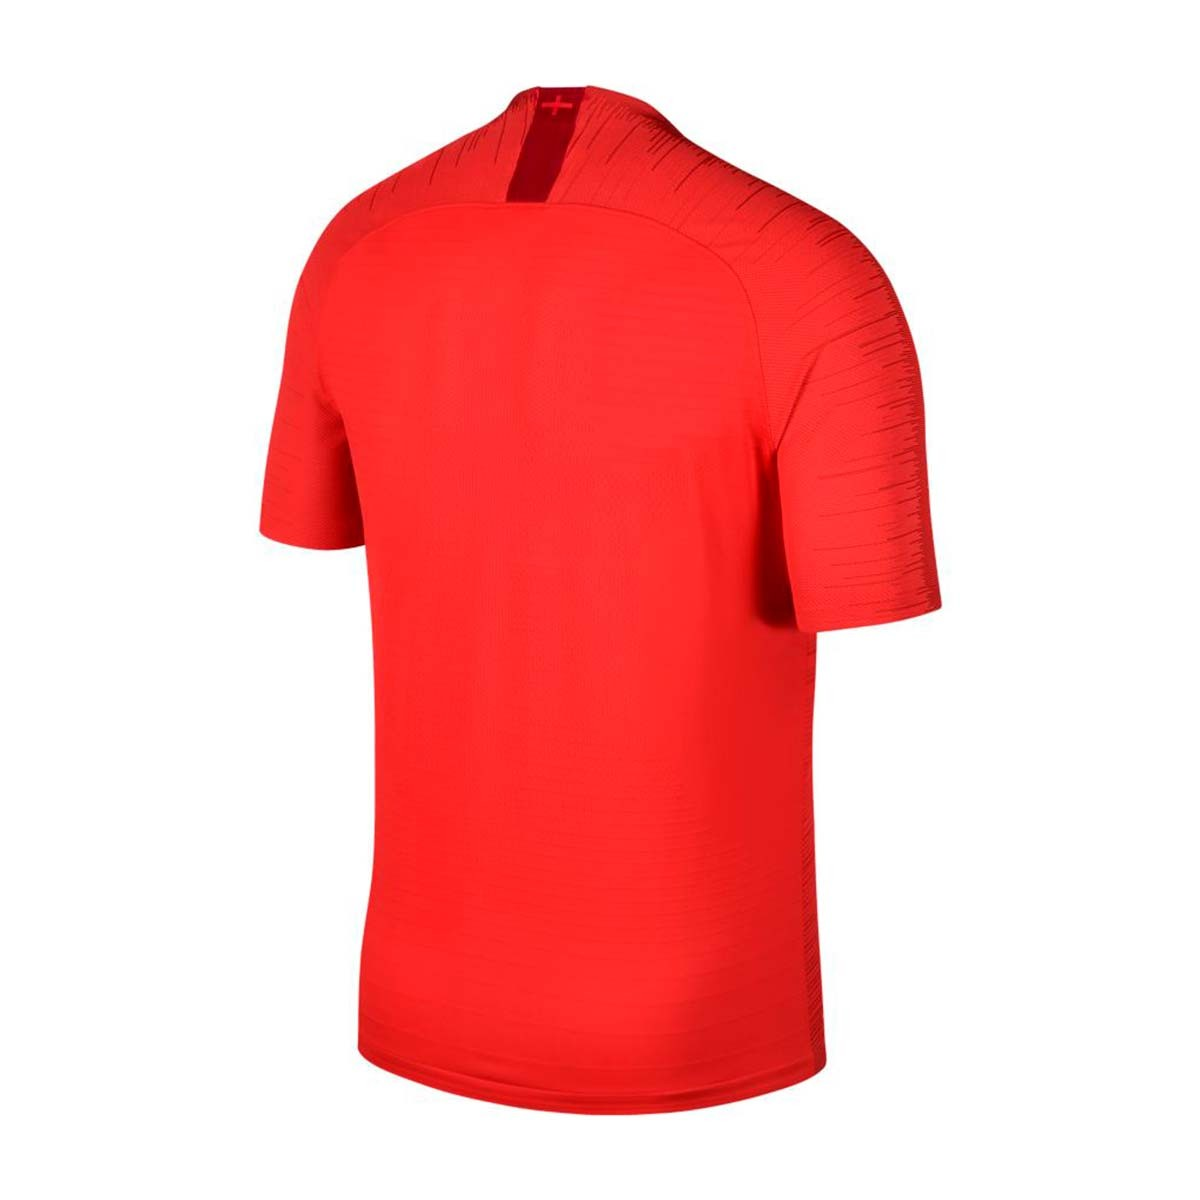 4a97c487a Jersey Nike England Vapor 2018-2019 Away Challenge red-Gym red-White ...